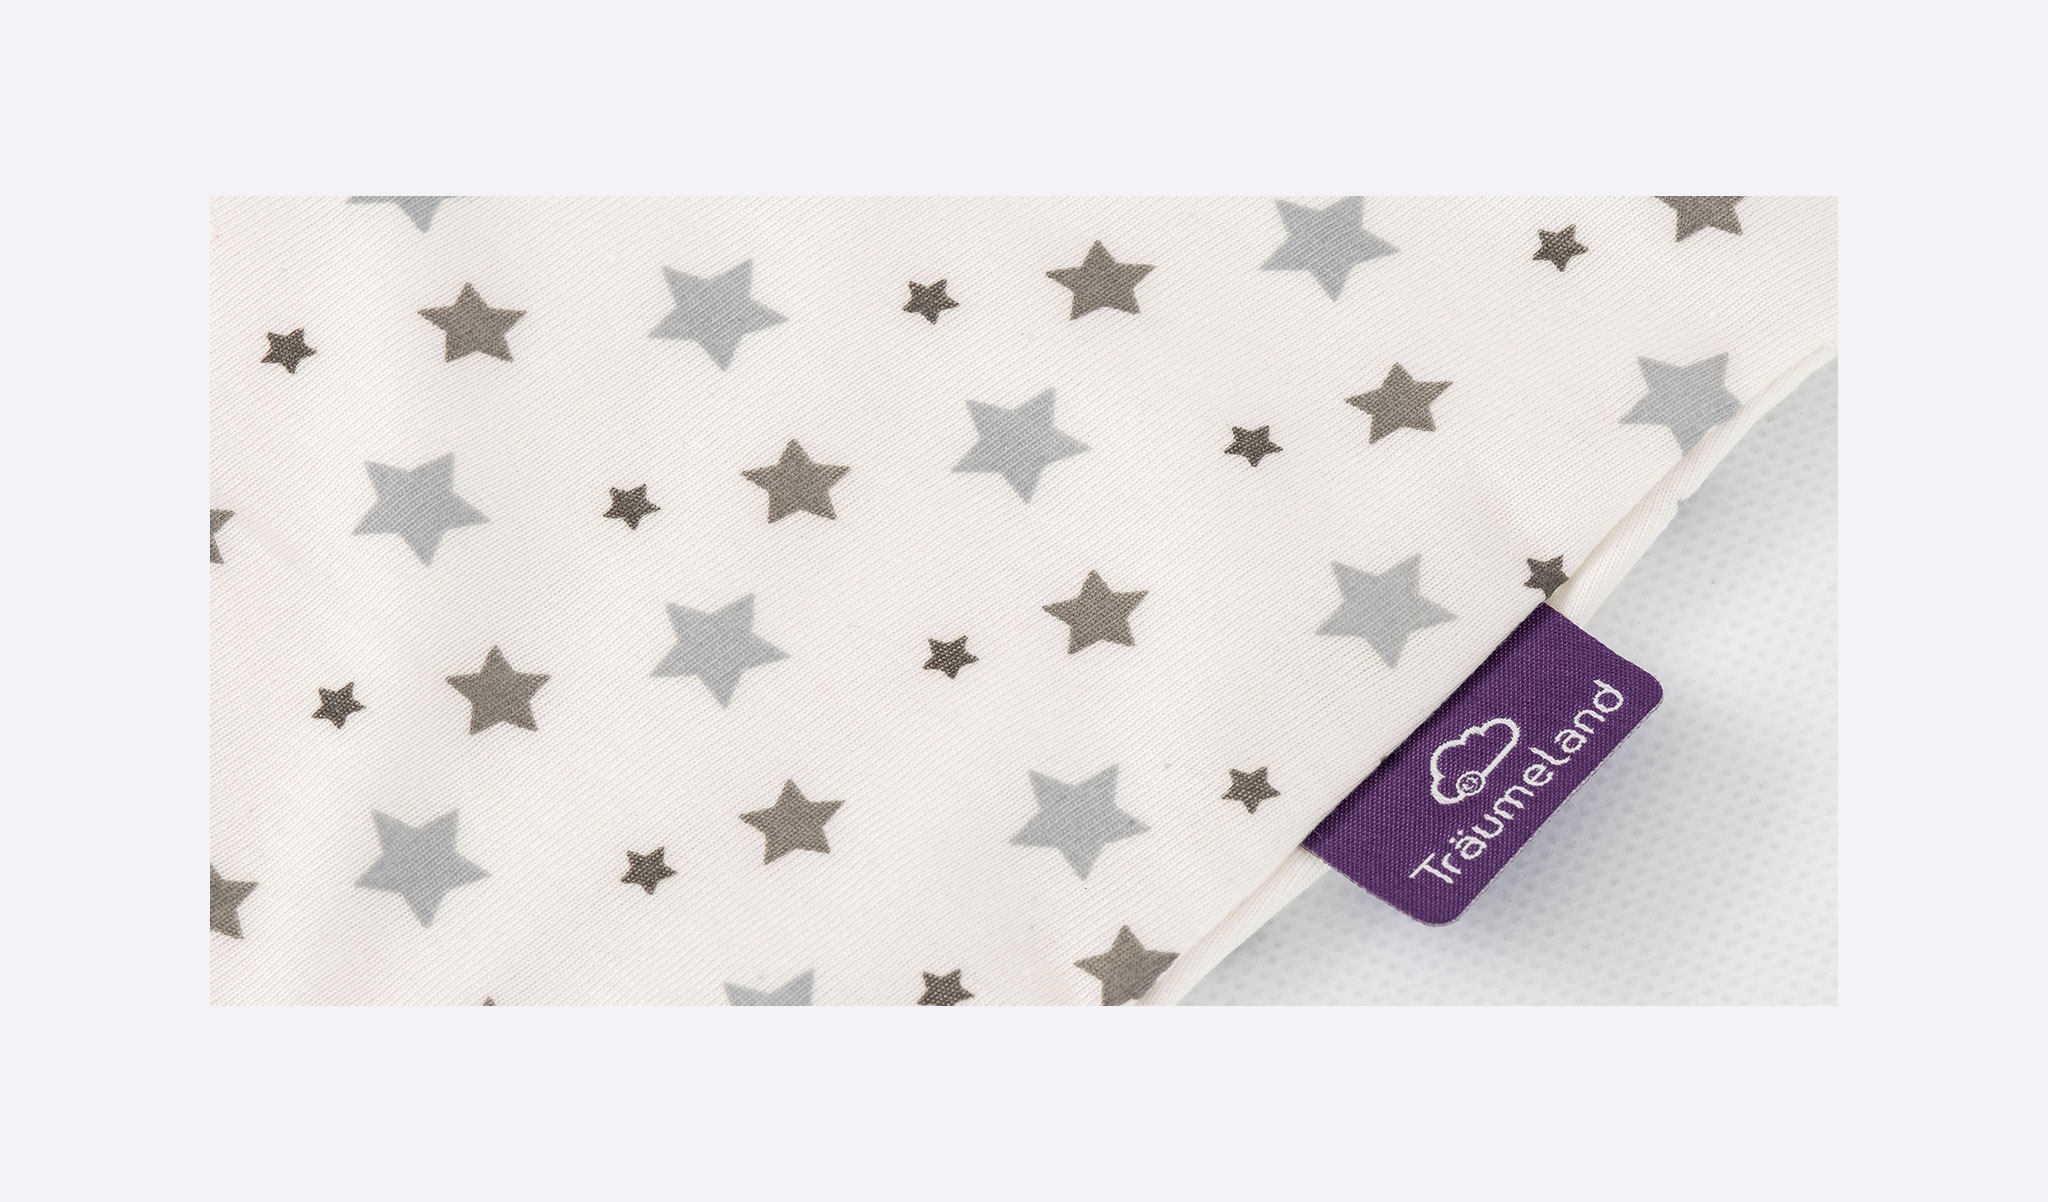 S0300307 - summer sleeping bag white with grey stars